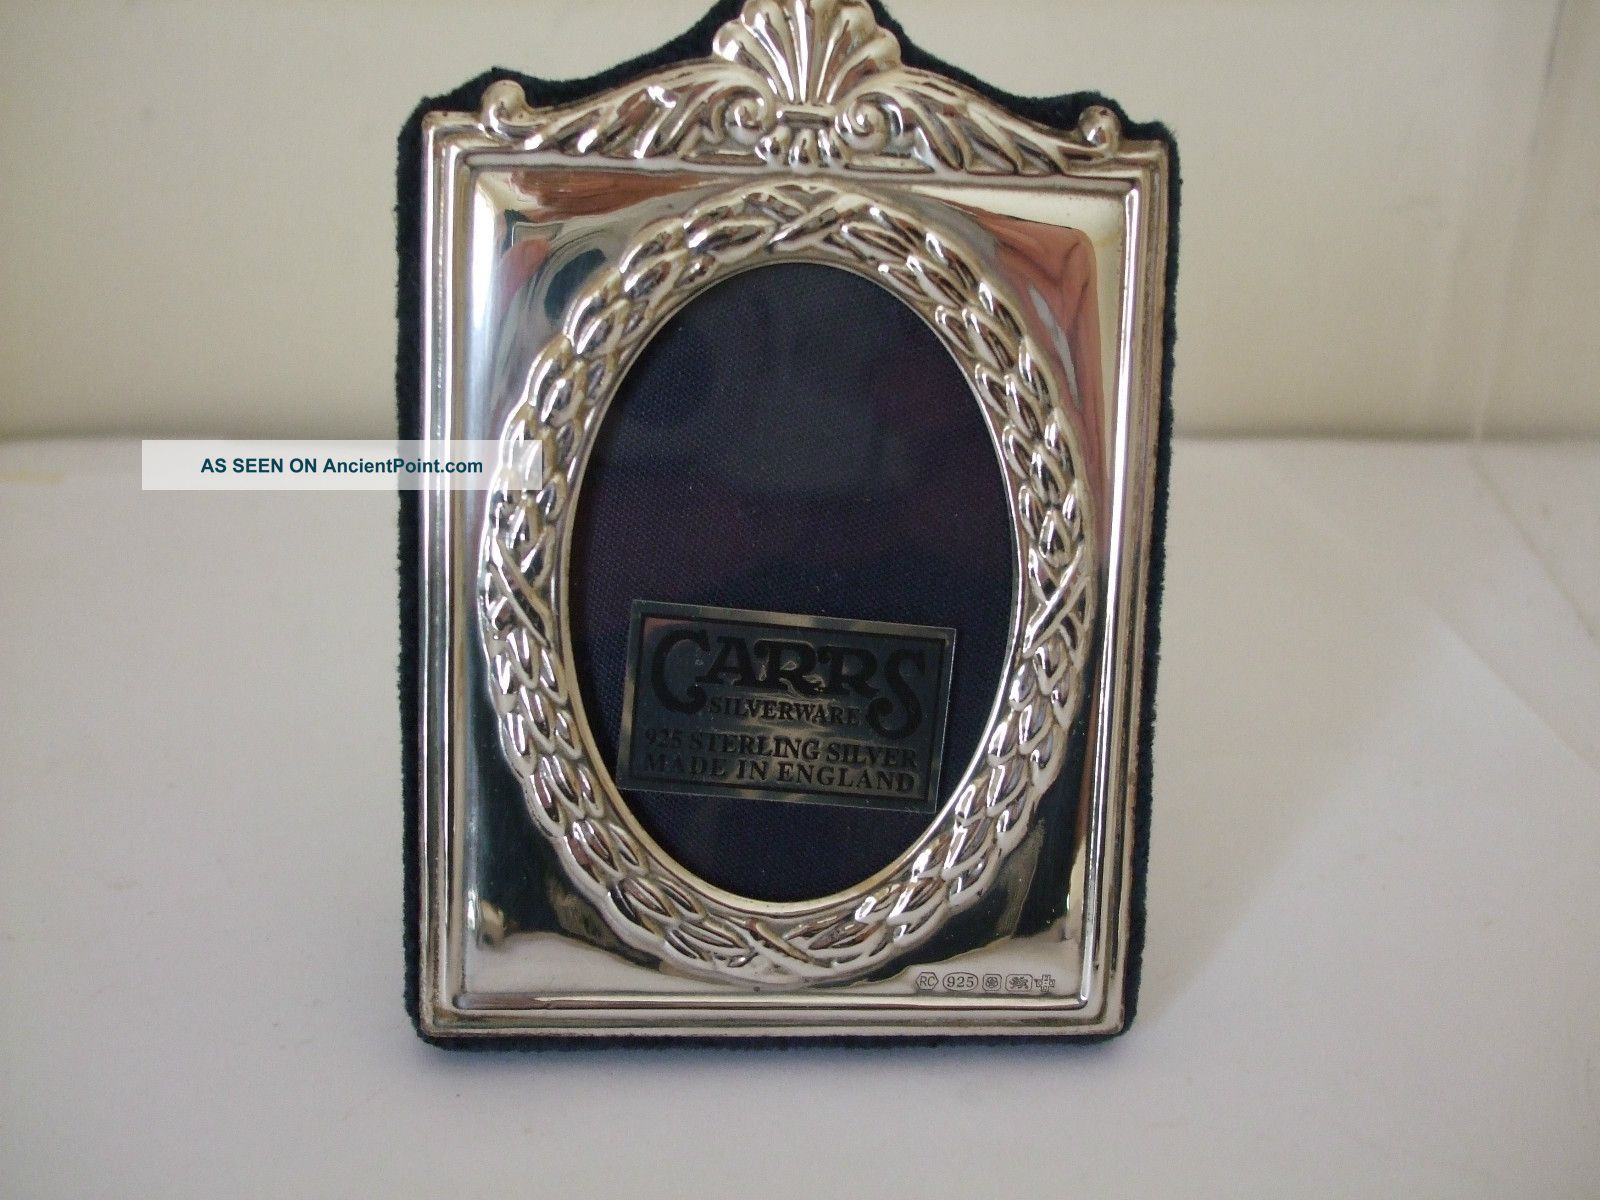 Elegant Design Silver Photo Frame By Carrs Millennium Hallmark 2000 - Collectable Frames photo